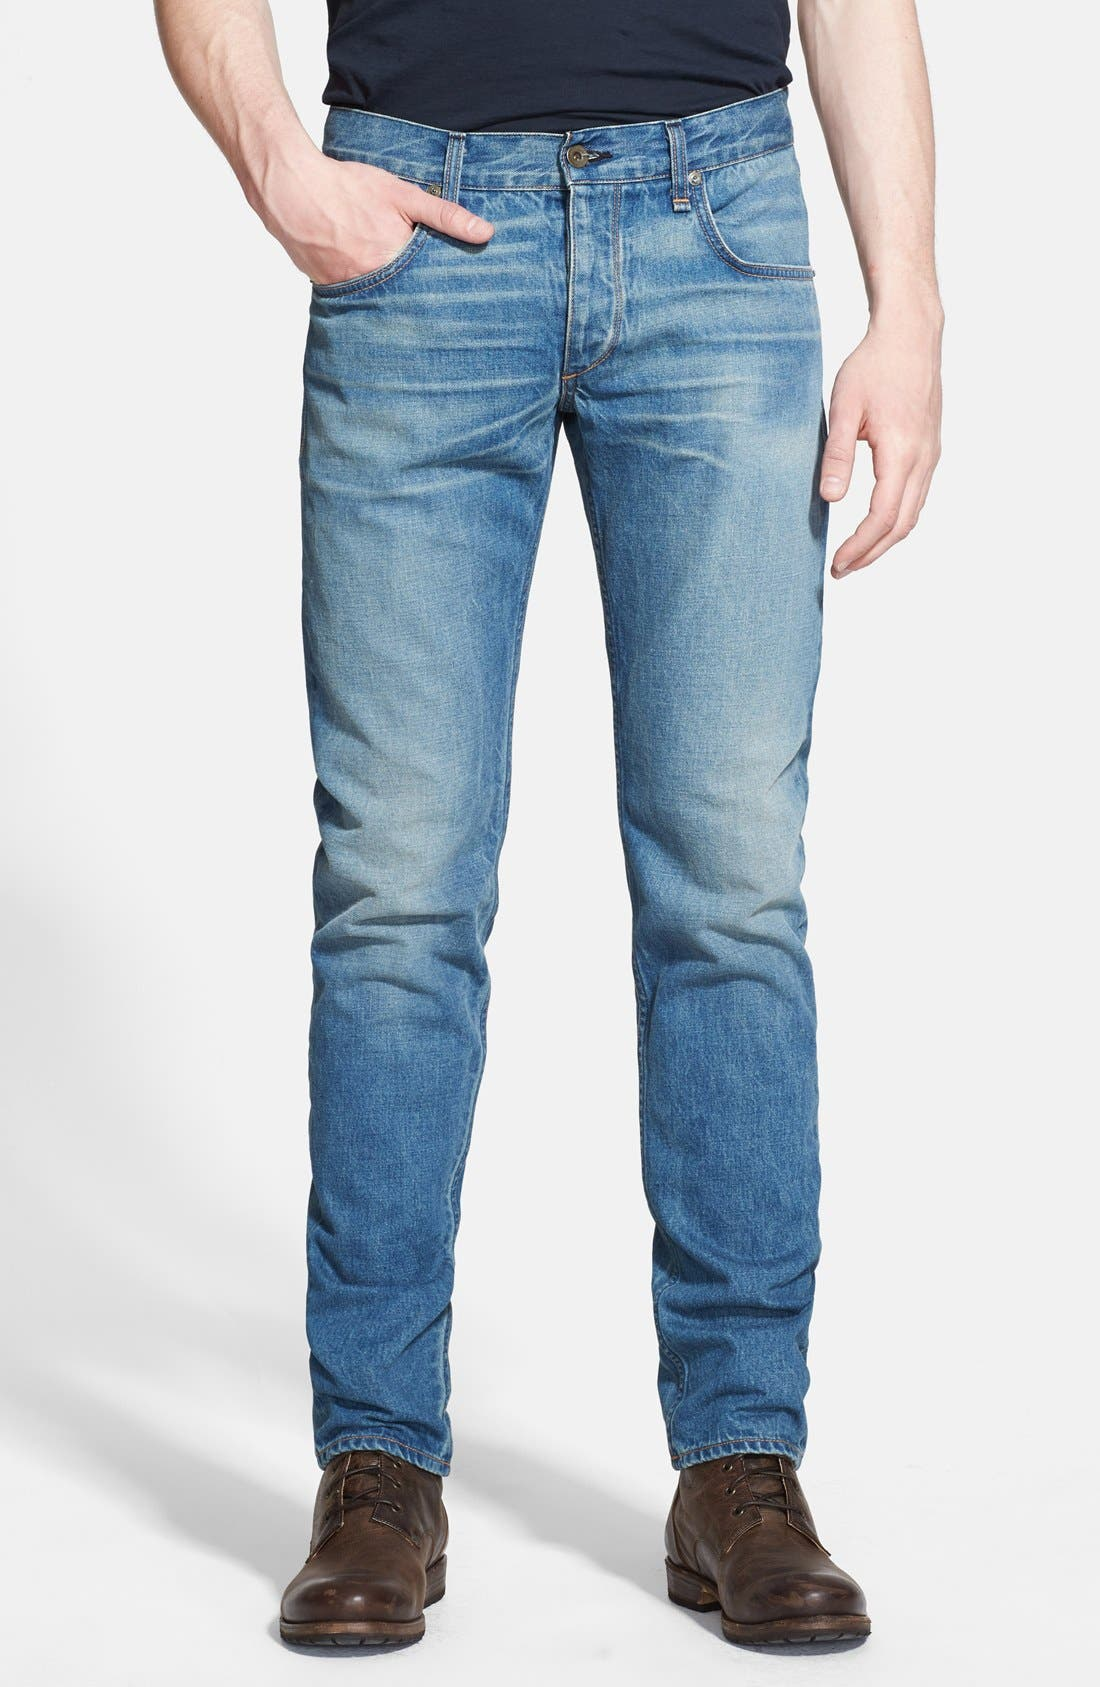 Main Image - rag & bone 'RB23X' Slim Fit Jeans (Coastline Blue)